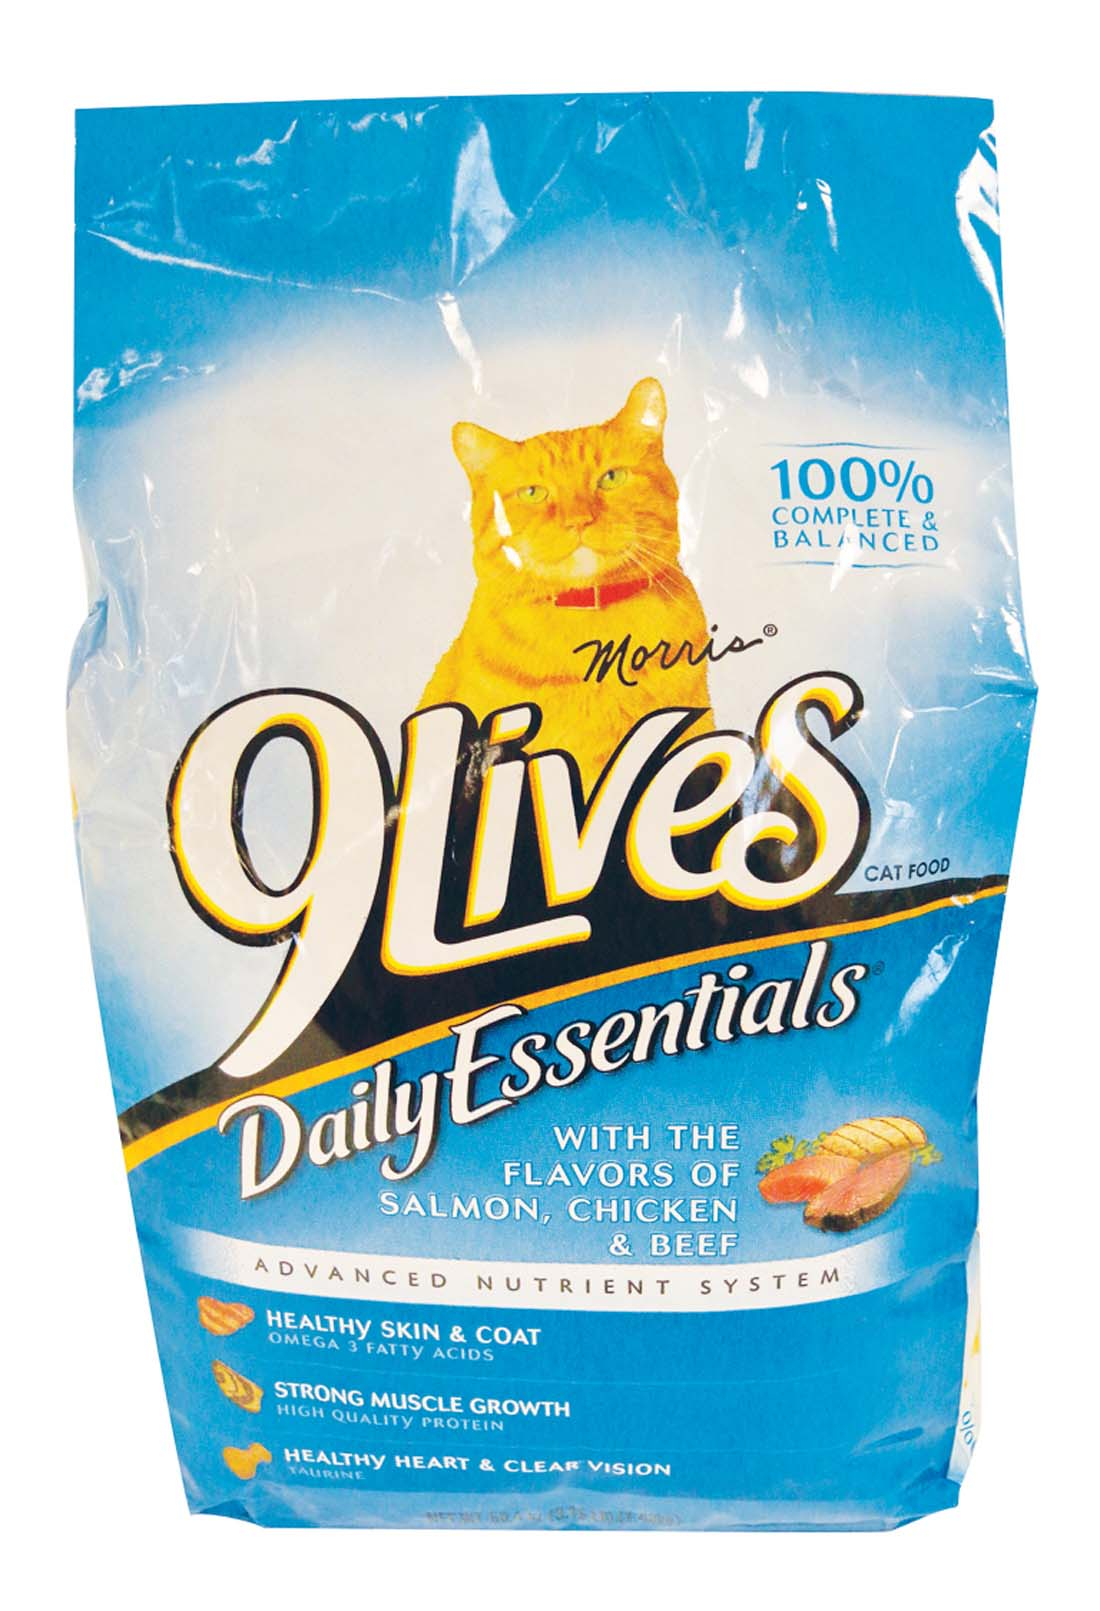 View 9 LIVES DRY CAT FOOD 3.15 LB DAILY ESSENTIALS